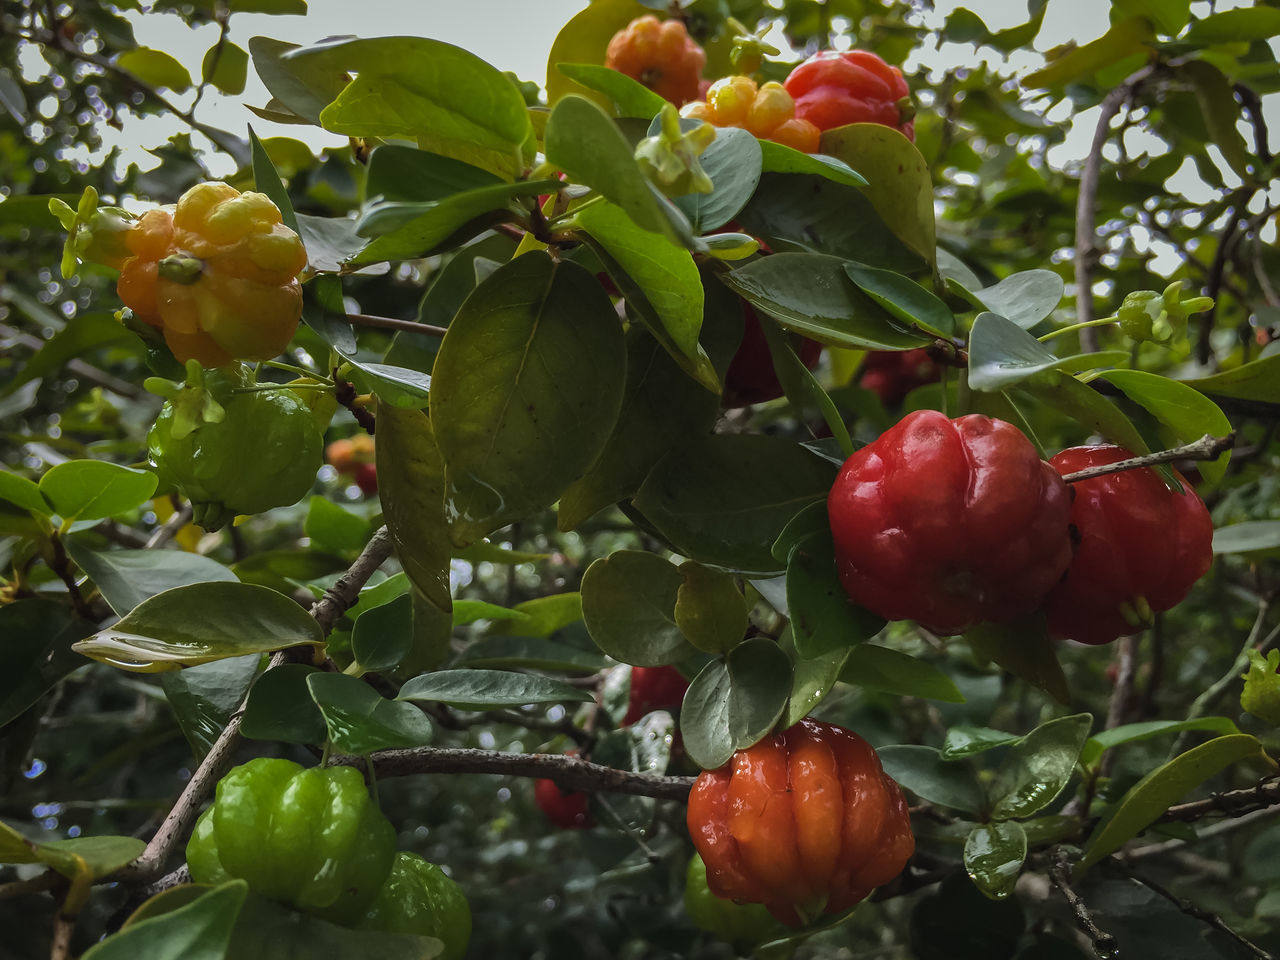 Surinam cherries in various stages of ripeness Branch Close-up Focus On Foreground Food Freshness Fruit Fruit Photography Fruit Tree Growing Healthy Eating Low Angle View Red Ripe Surinam Cherries